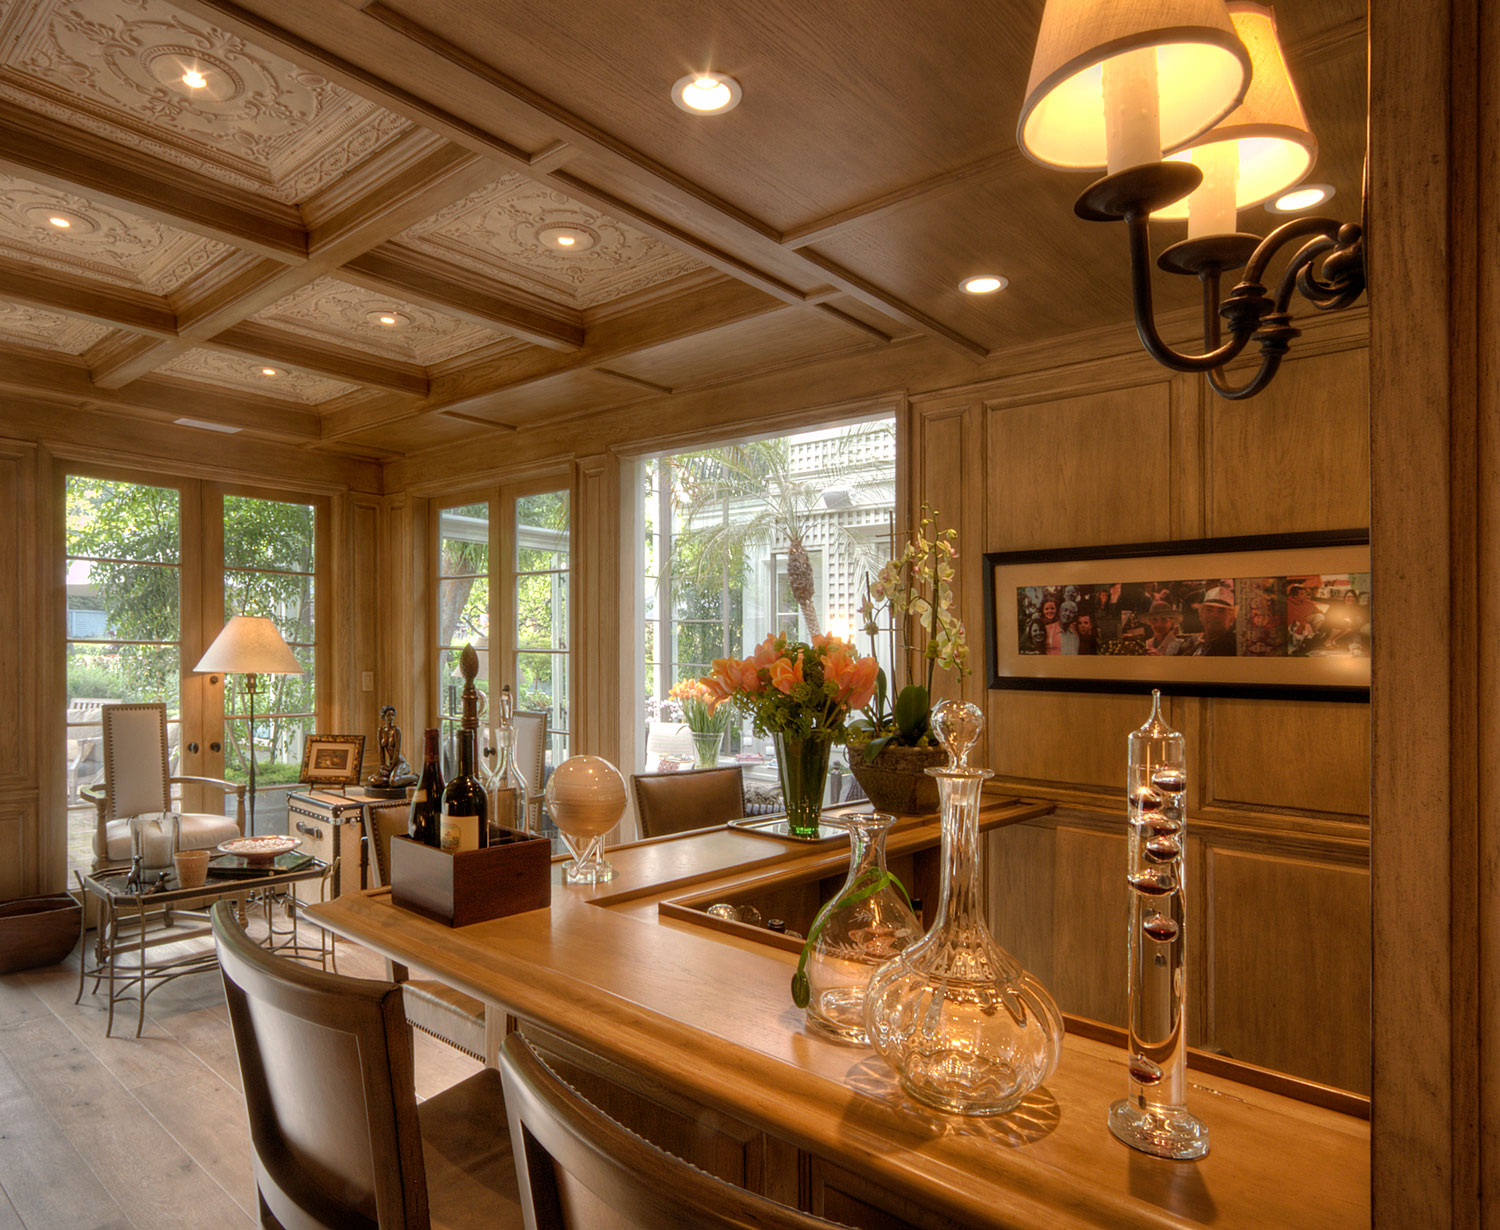 04-home-bar-wood-paneled-walls-coffered-ceiling-gary-drake-general-contractor.jpg